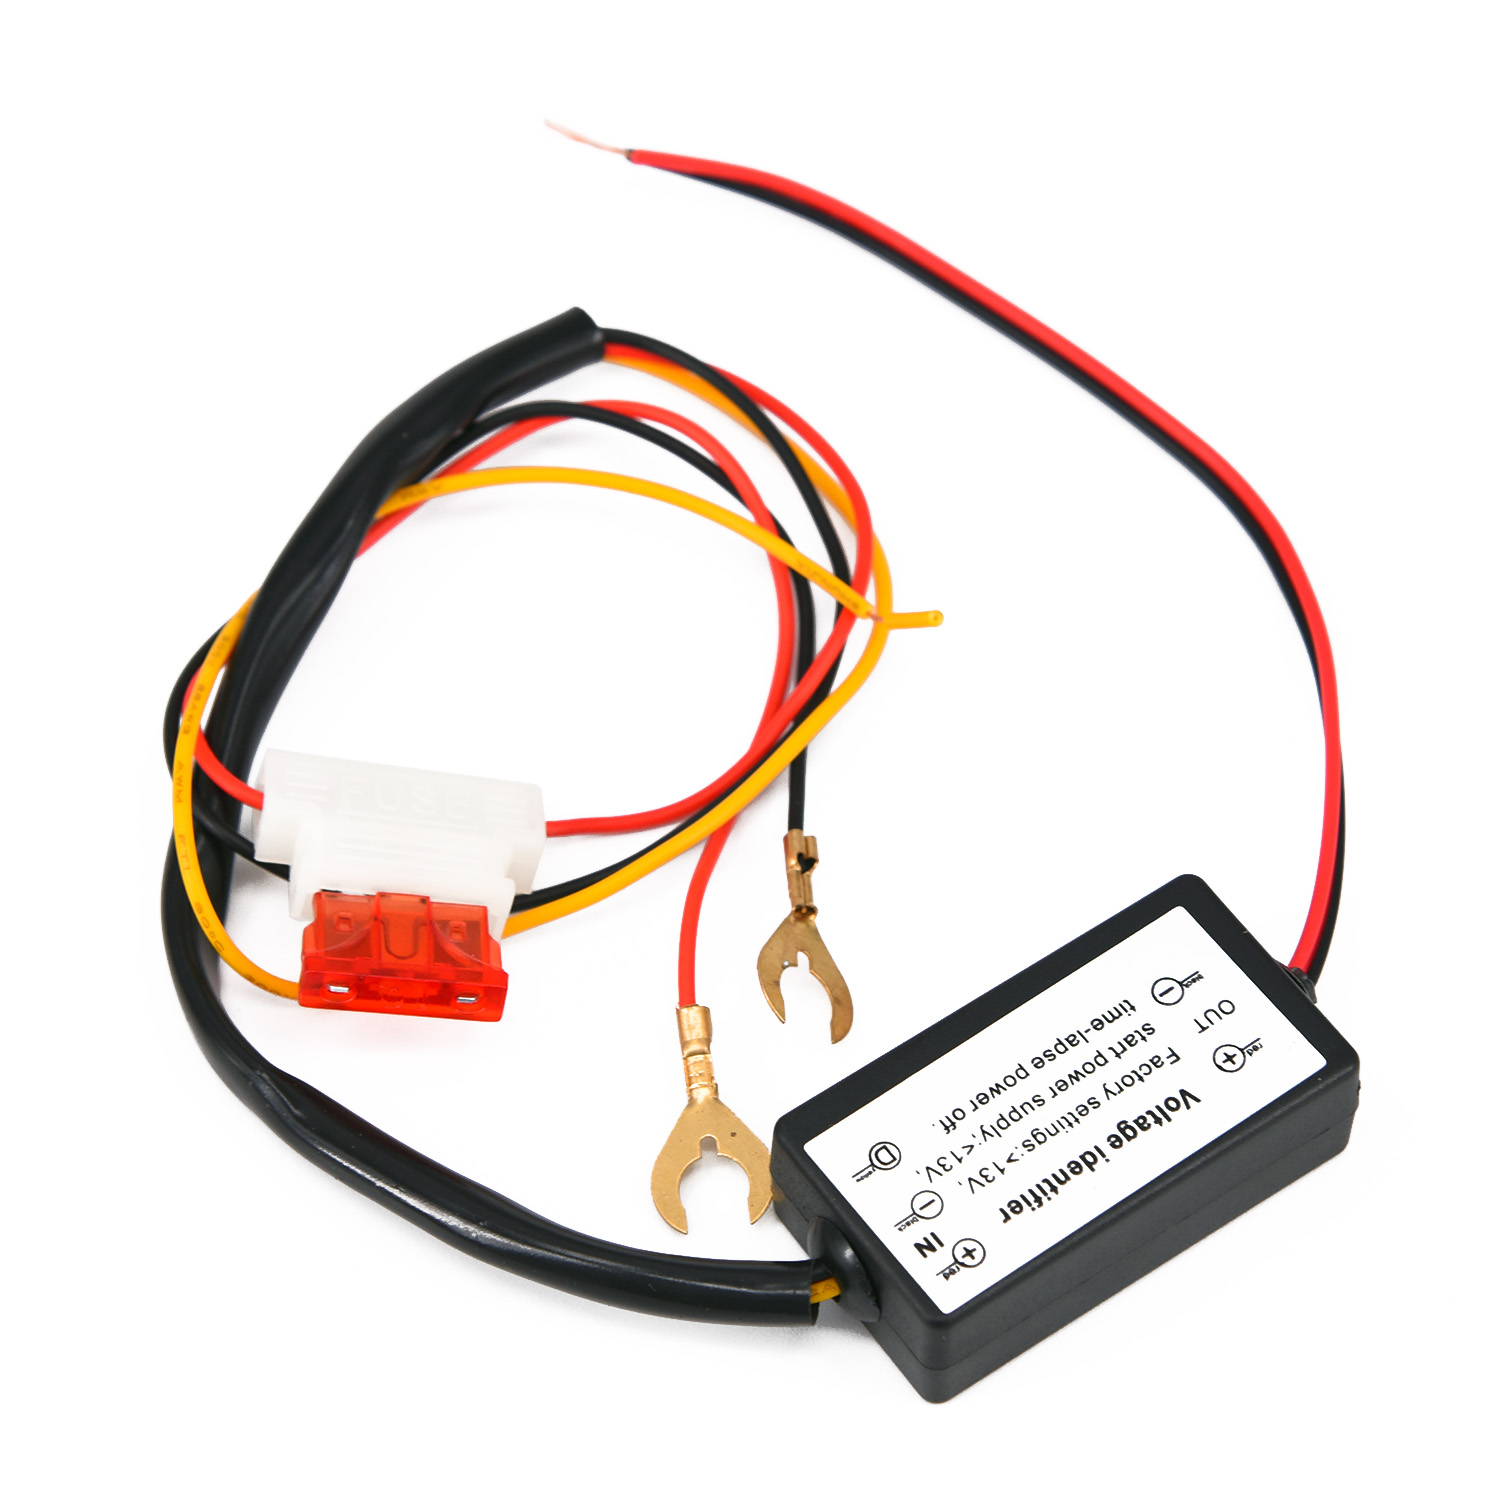 Drl Led Daytime Running Light Relay Harness Automatic On Off Control Fuse Lights Drls Wiring Diagram Car Controller Reduction Time Delay Has And